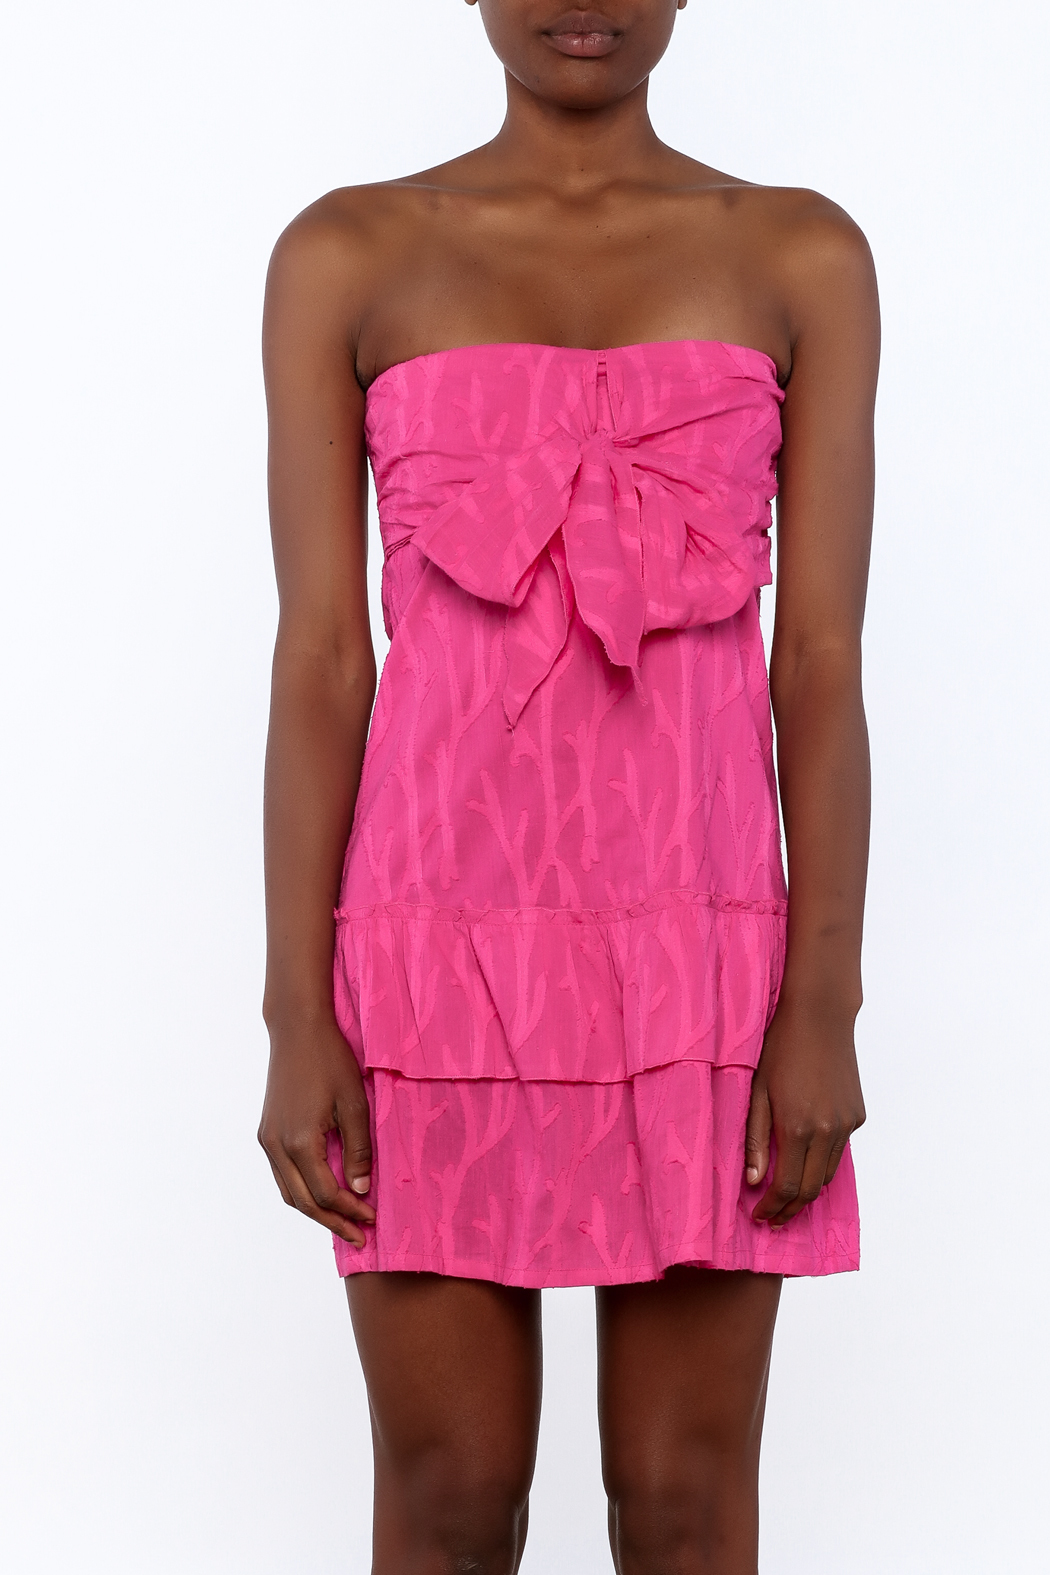 Southern Frock Pink Positano Dress - Side Cropped Image